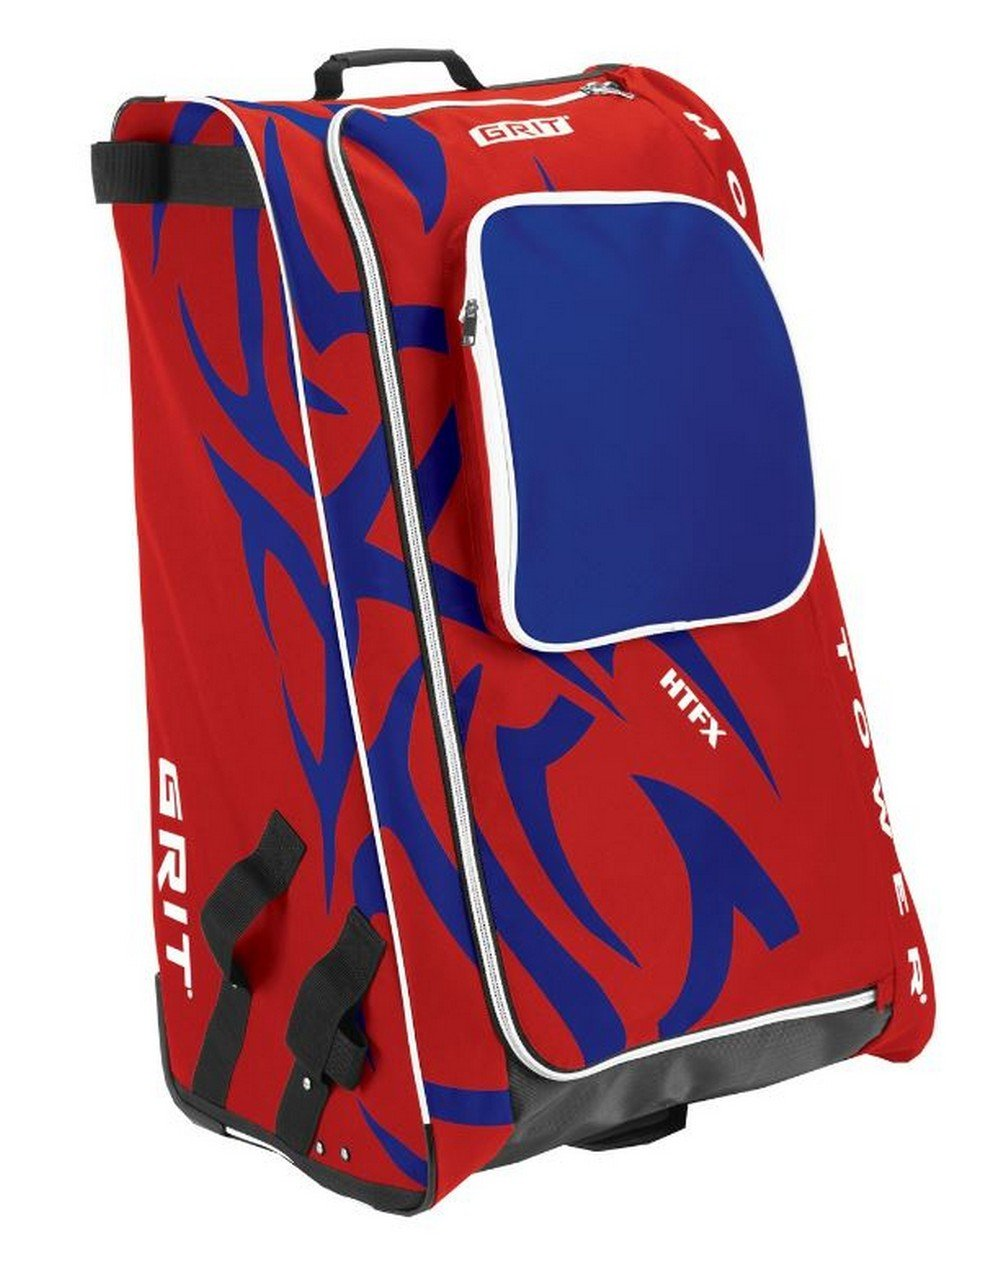 Grit Inc HTFX Hockey Tower 33'' Wheeled Equipment Bag Red HTFX033-MO (Montreal)